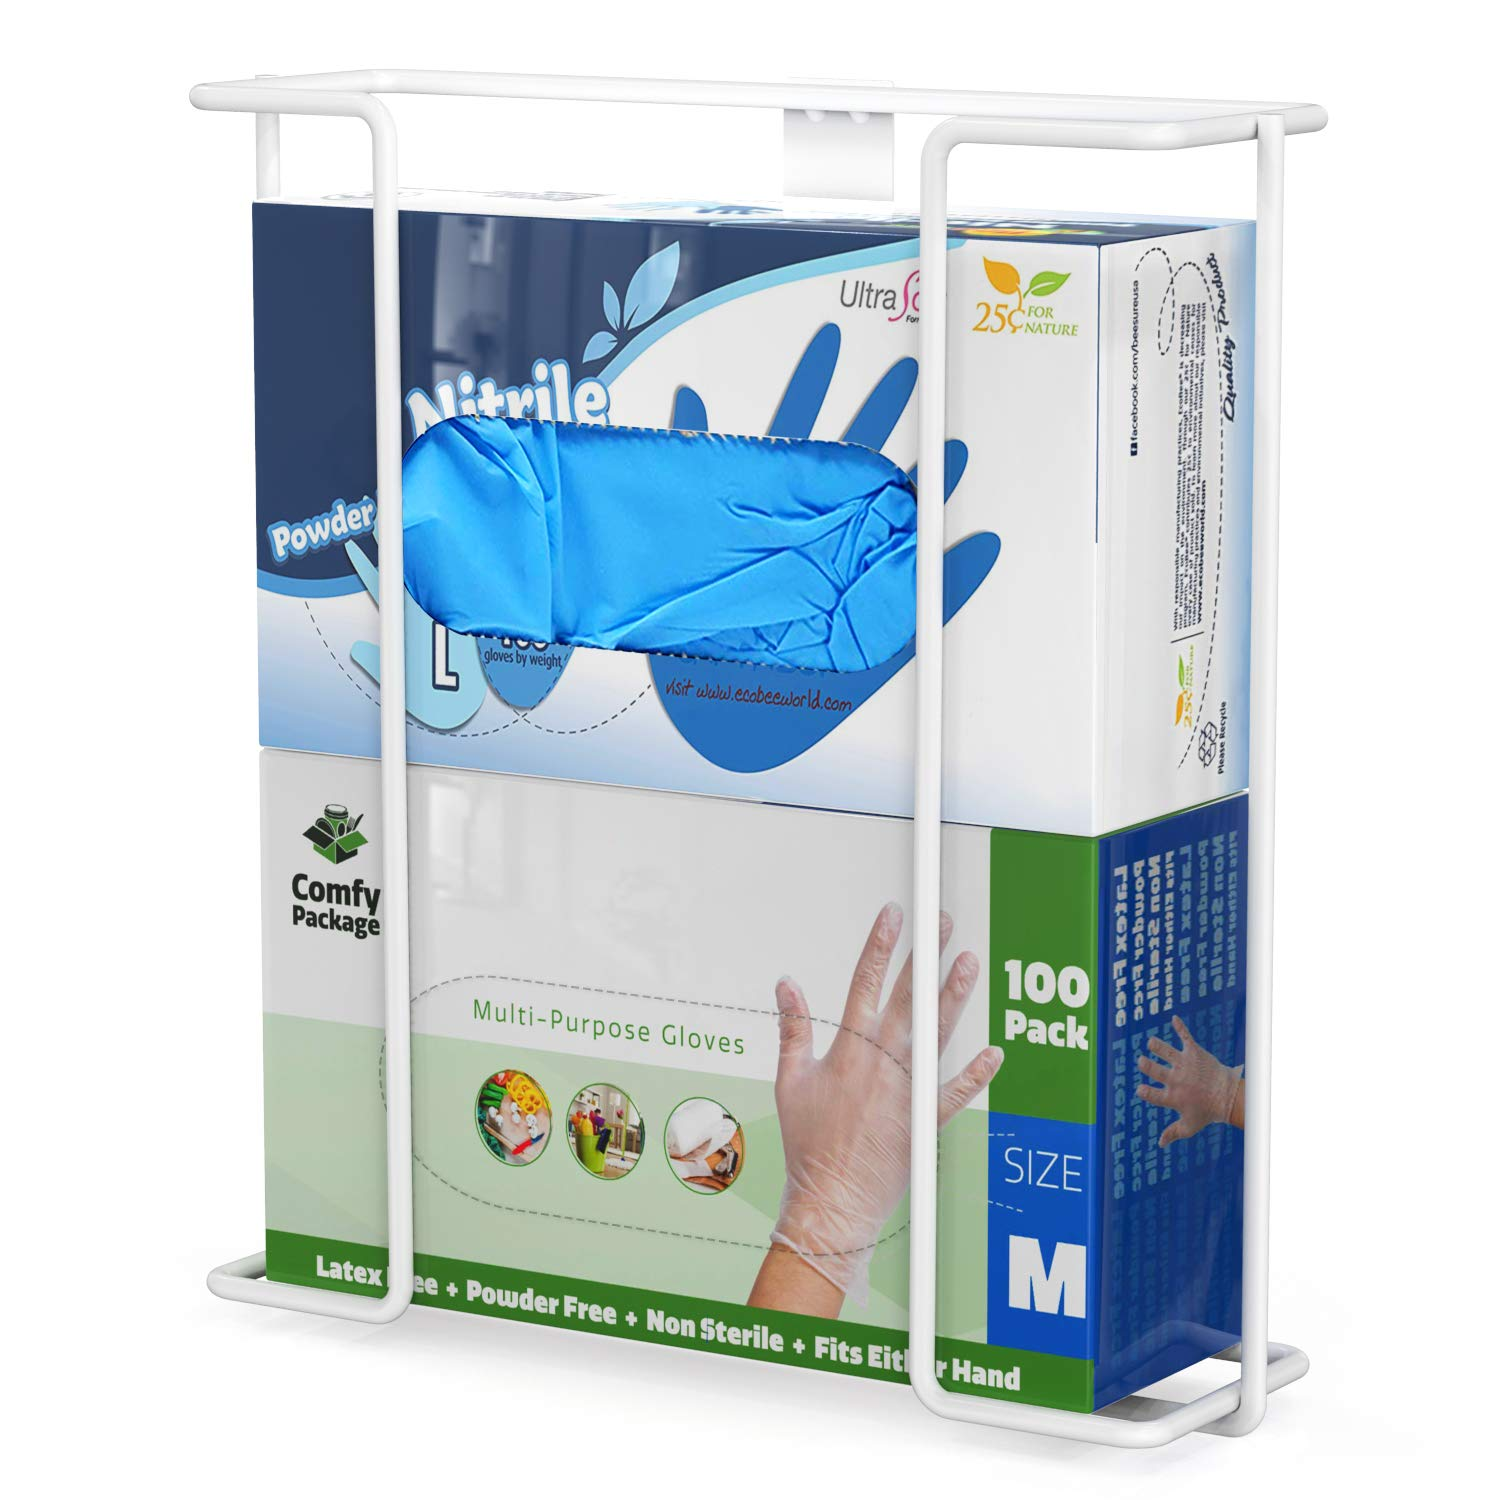 TITE Disposable Glove Box Holder Dispenser Double Wall Mounted Universal Napkin Wire Rack Standard Size